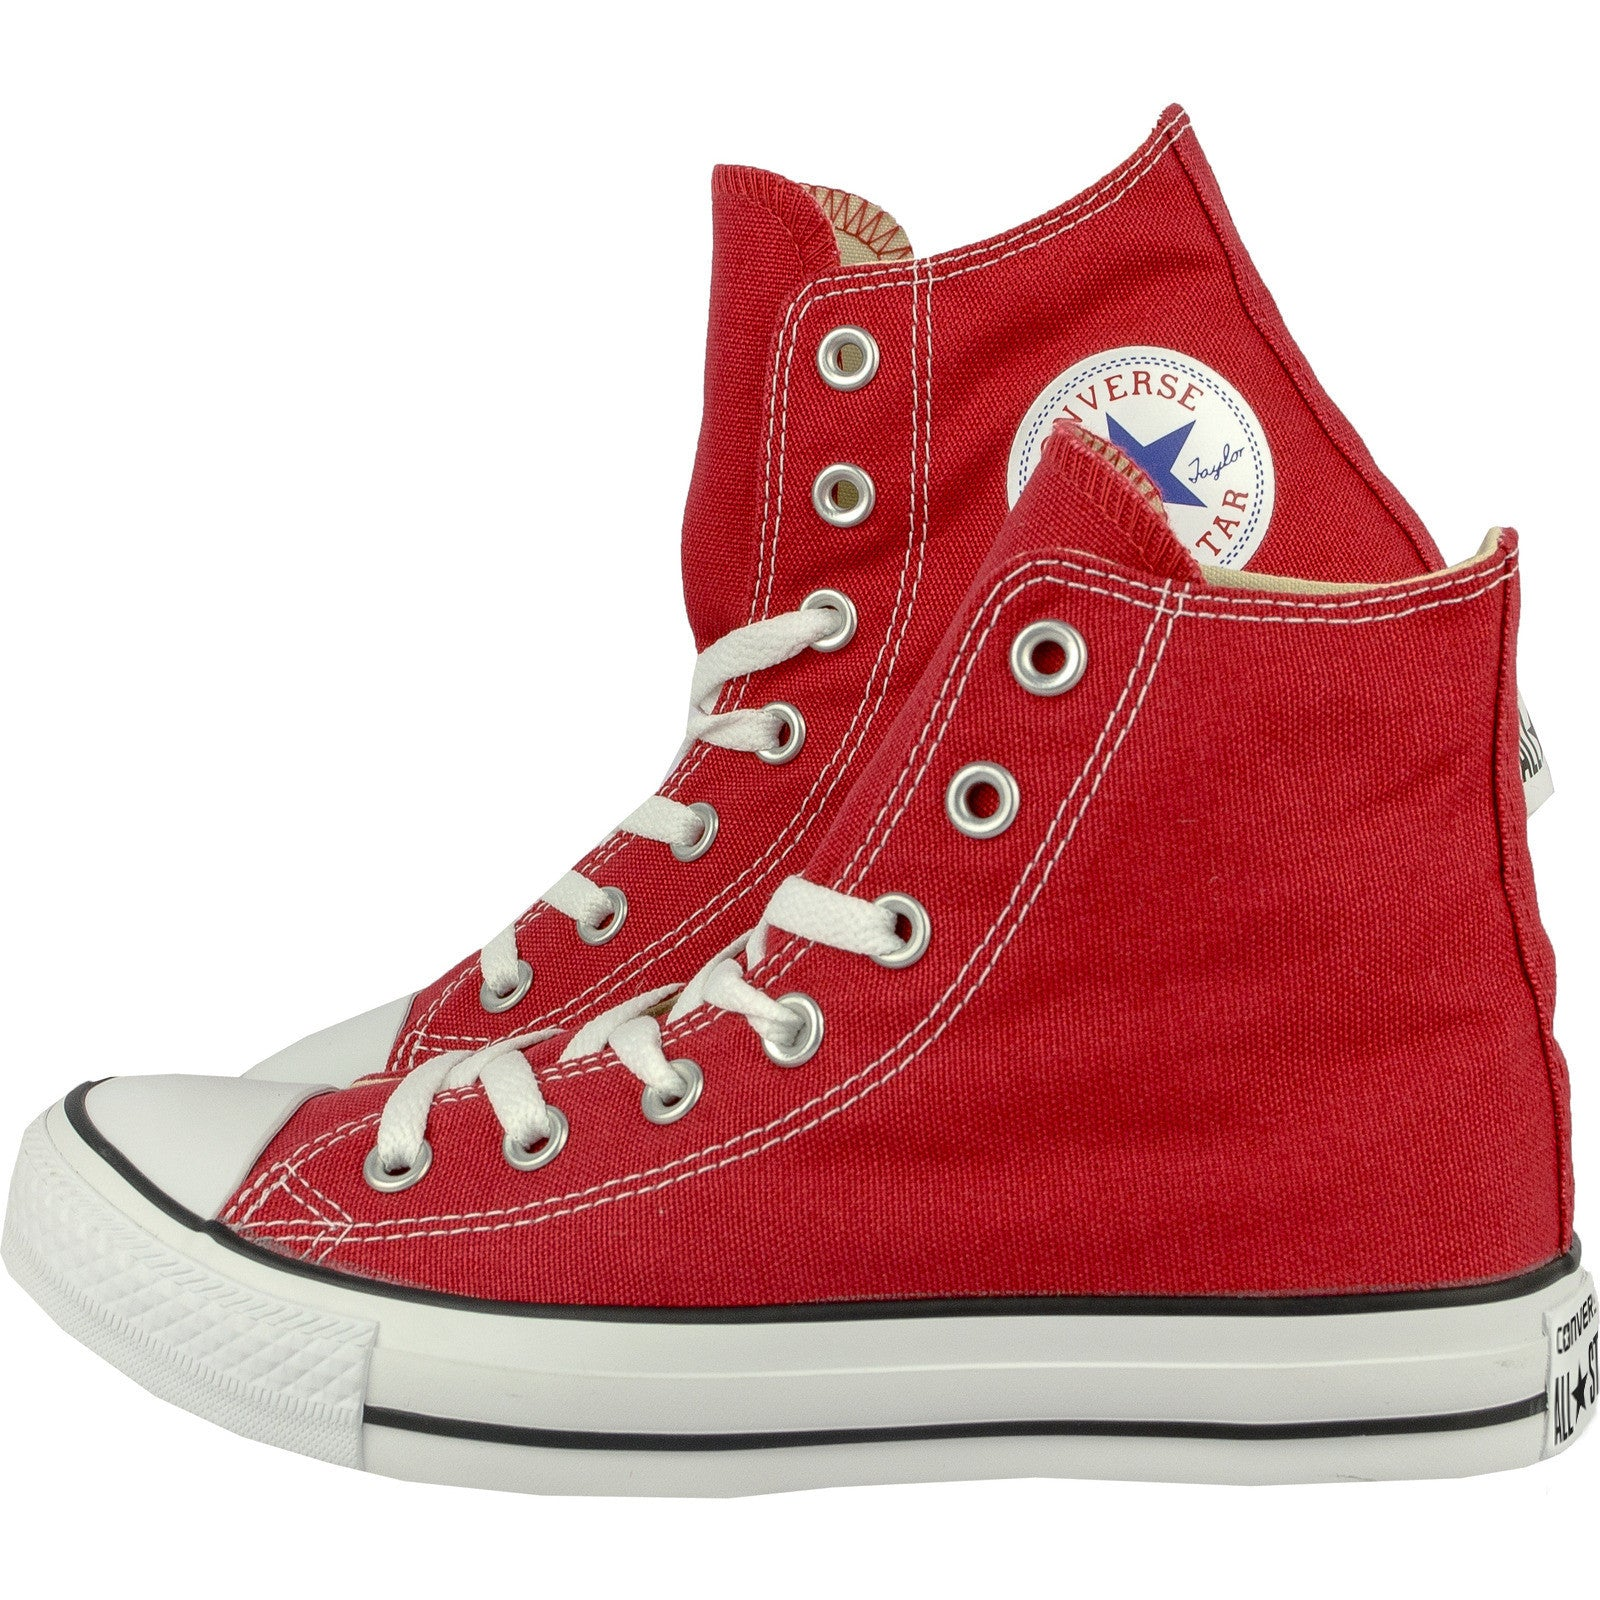 dd21f909971 ... Converse Classic Chuck Taylor High Trainer Sneaker All Star HI NEW  sizes Shoes